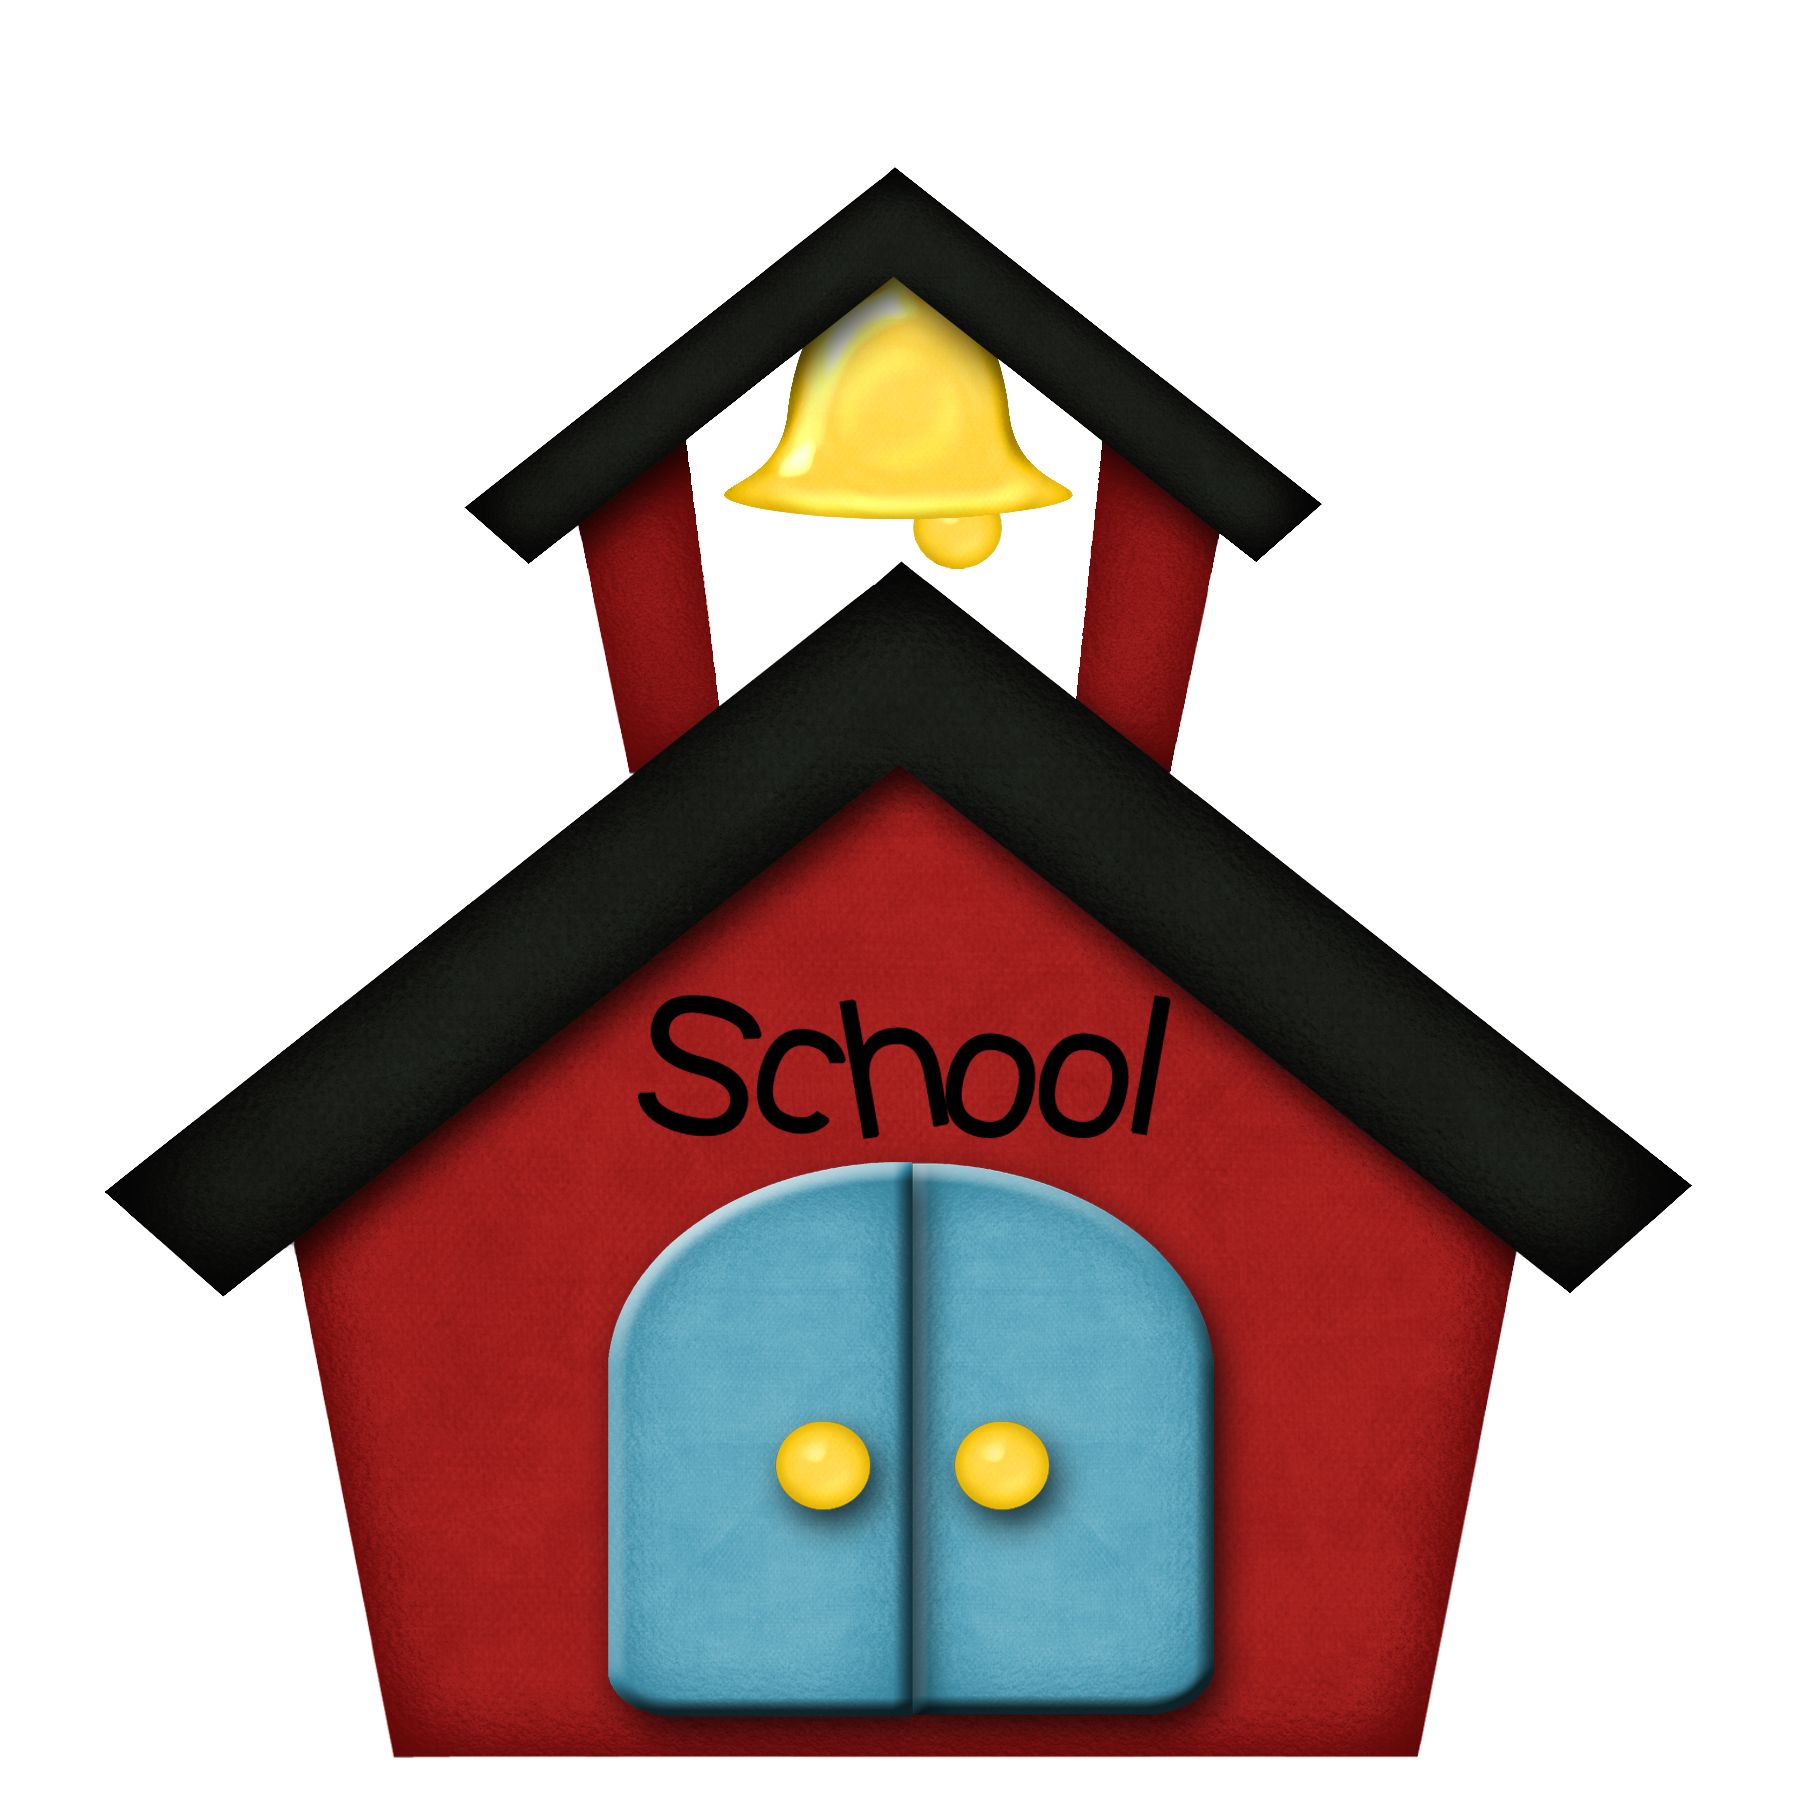 School house images free clipart 6